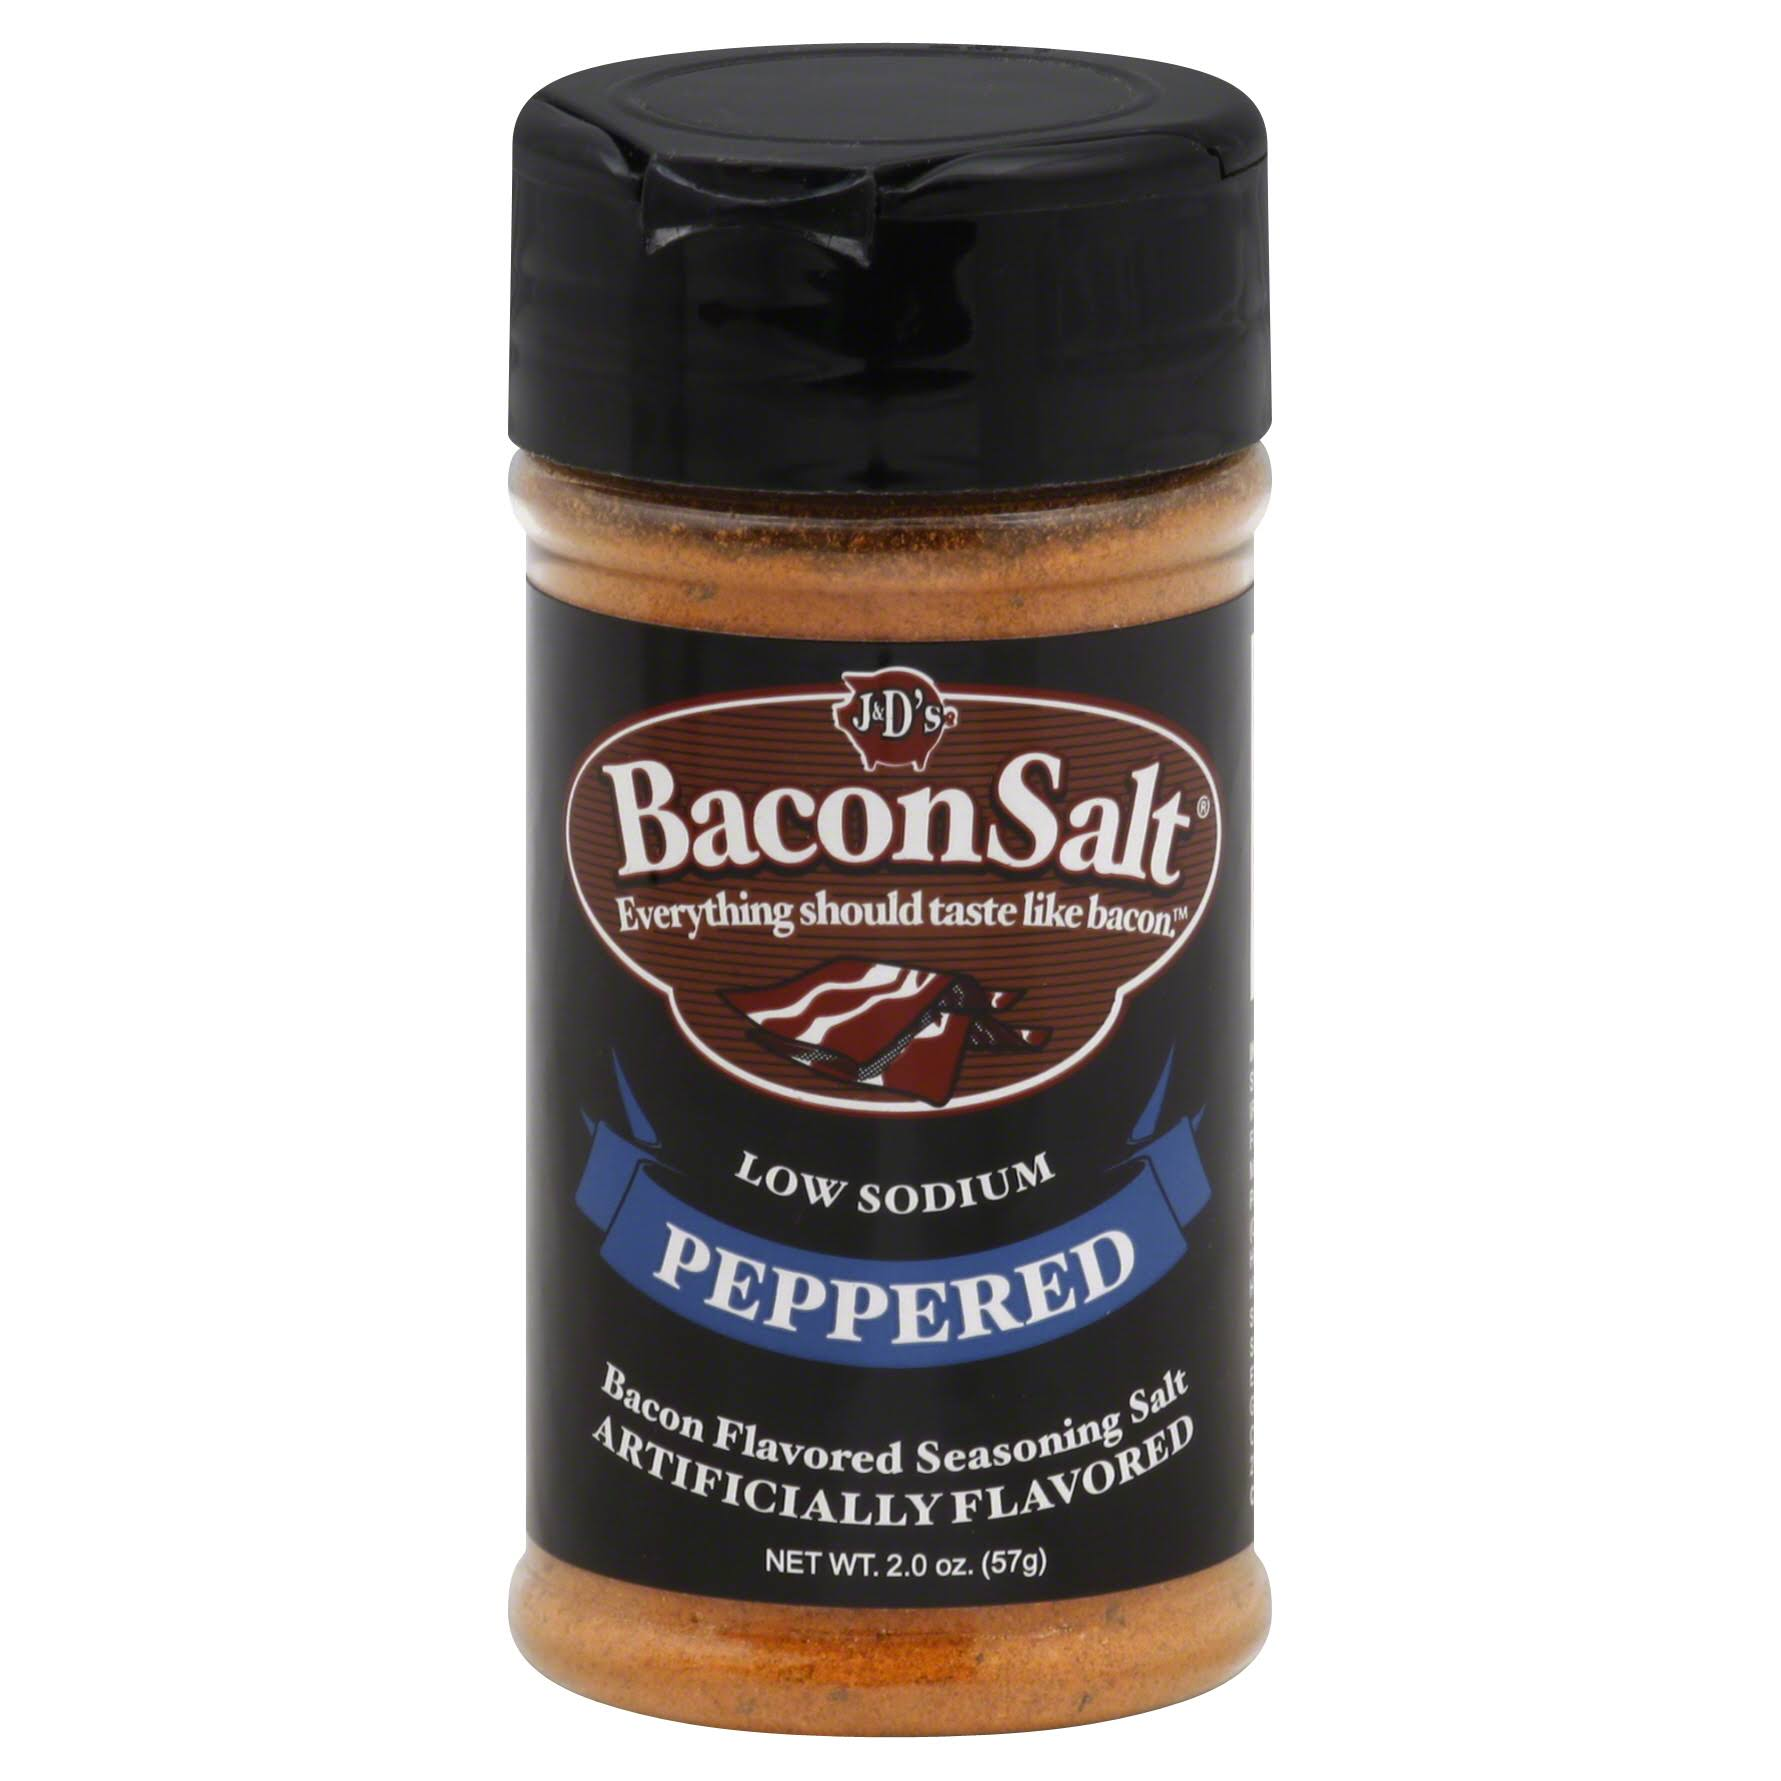 J&D's Bacon Salt - Peppered, 2oz